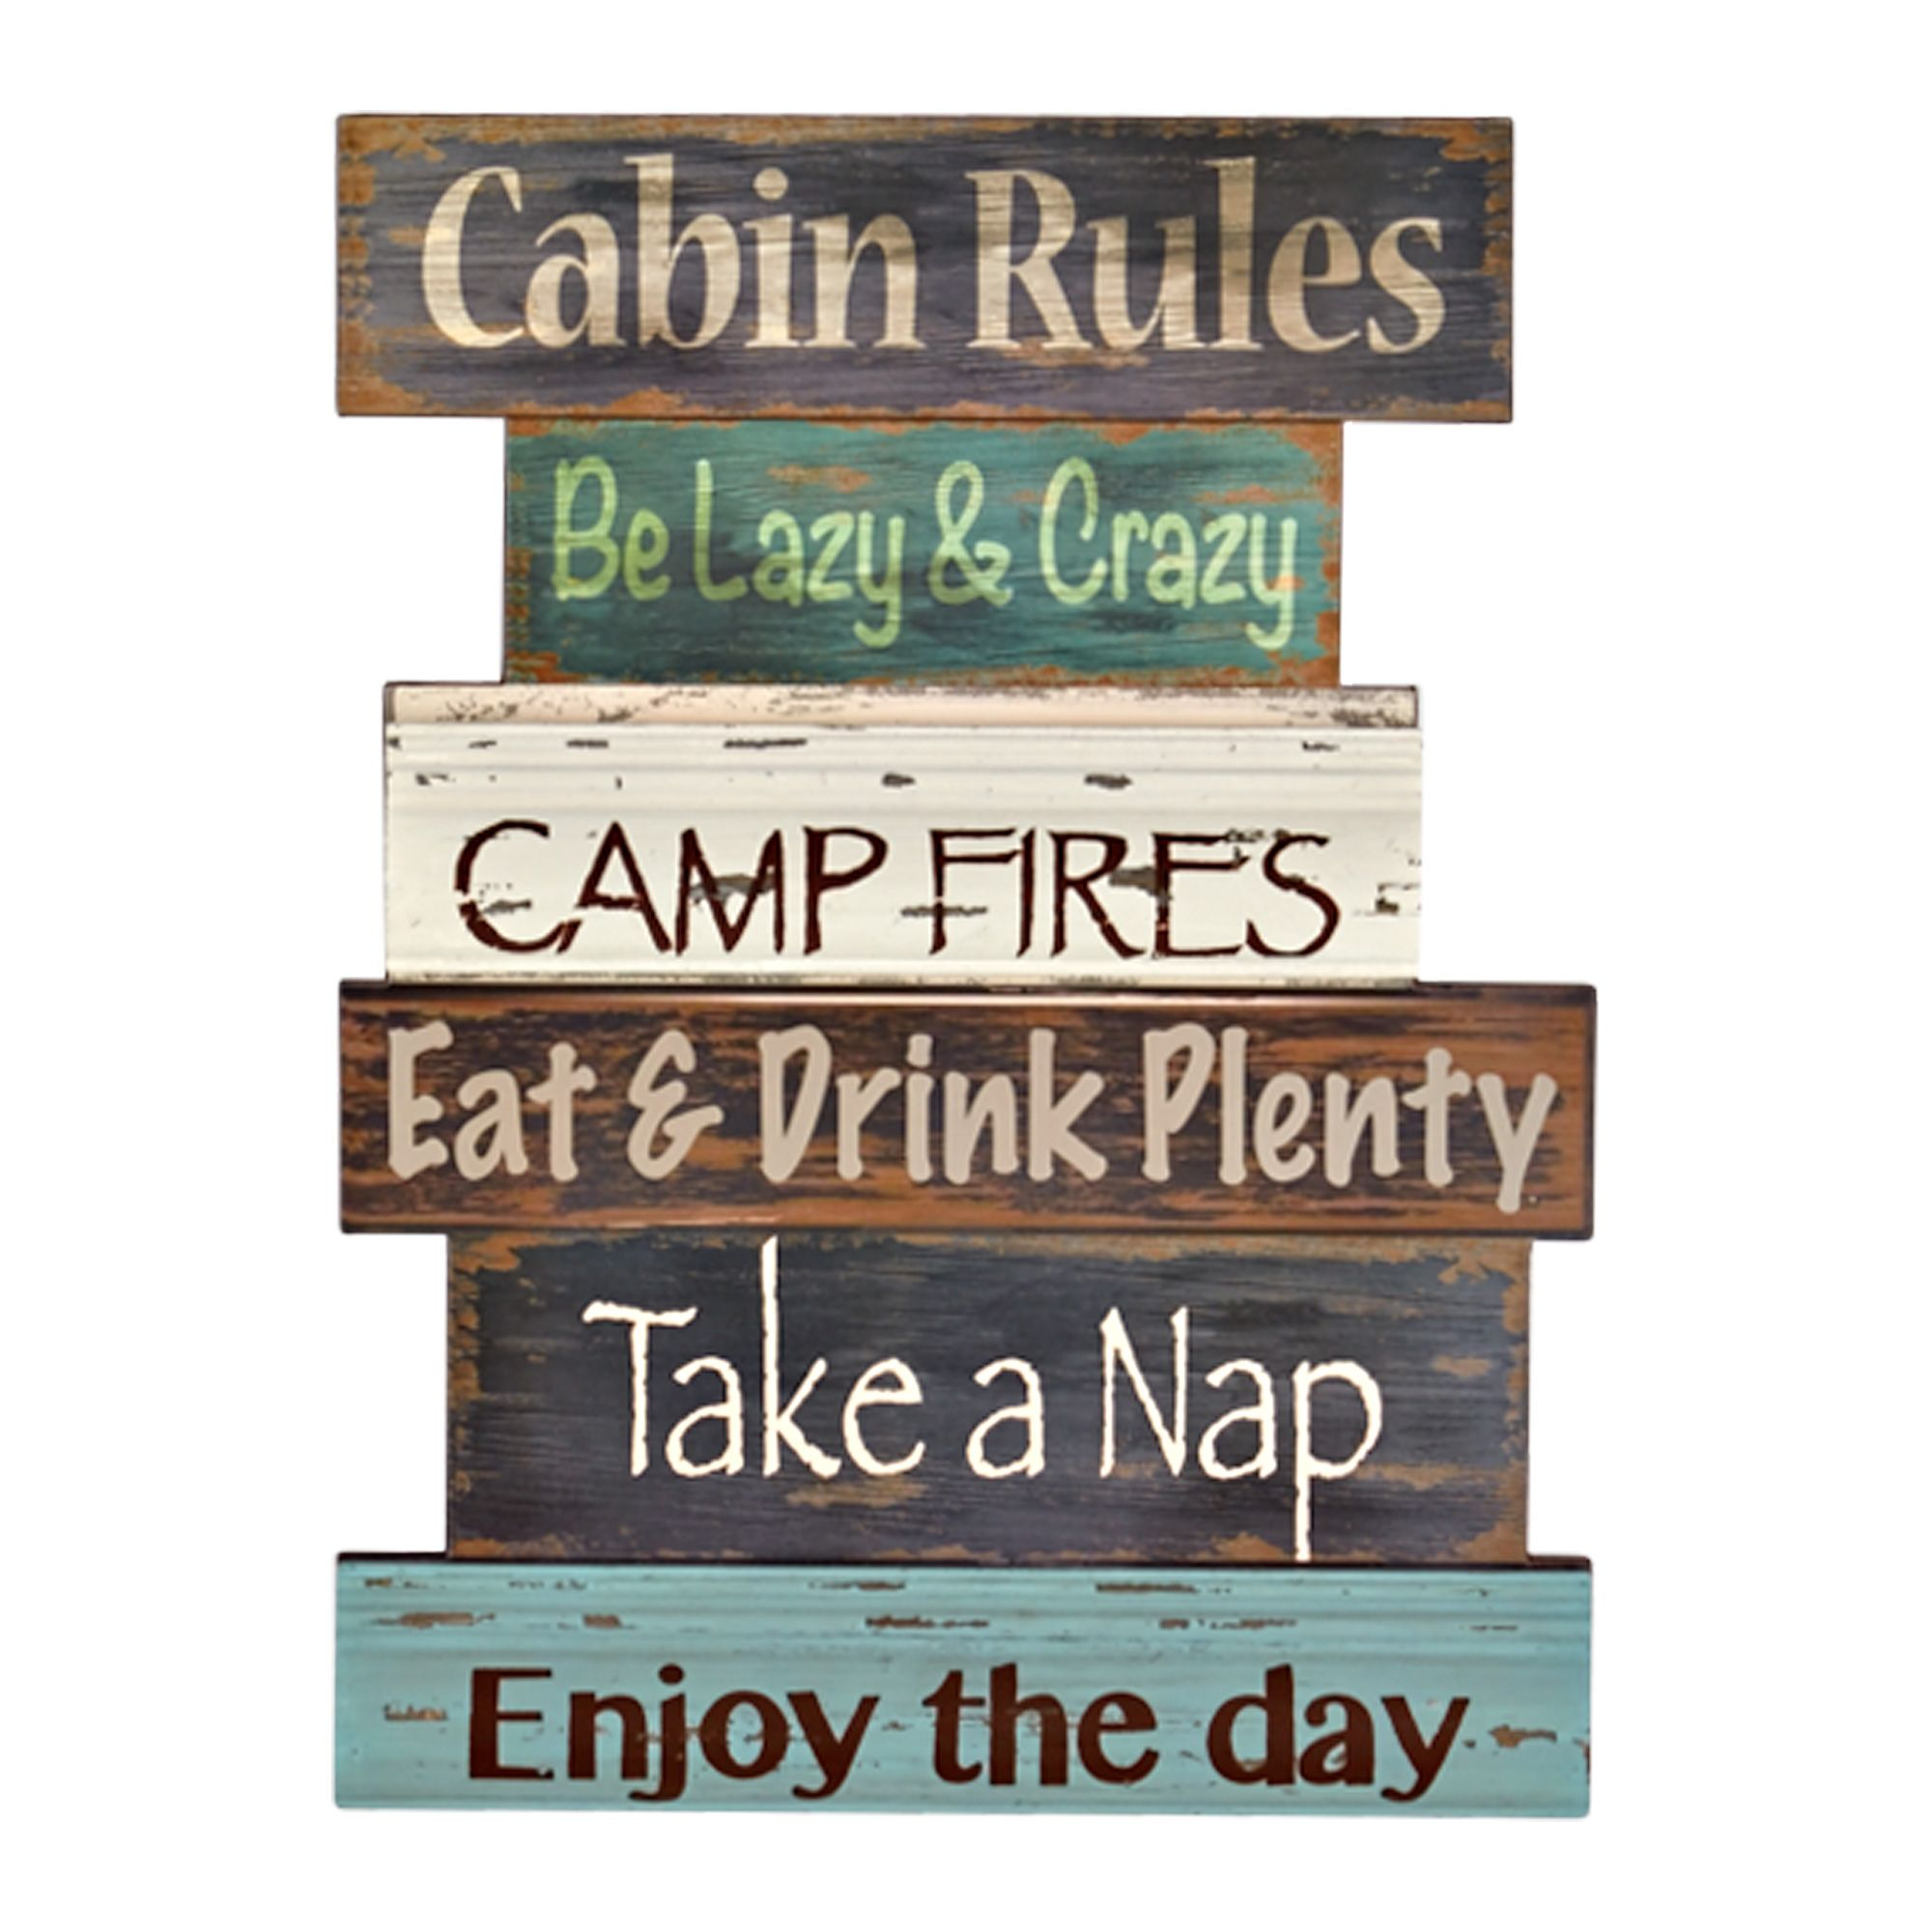 "Wall Decor Signs For Home New Cabin Rules Wall Décor 12"" X 16""  Gordmans  Gordmans Decor Design Inspiration"